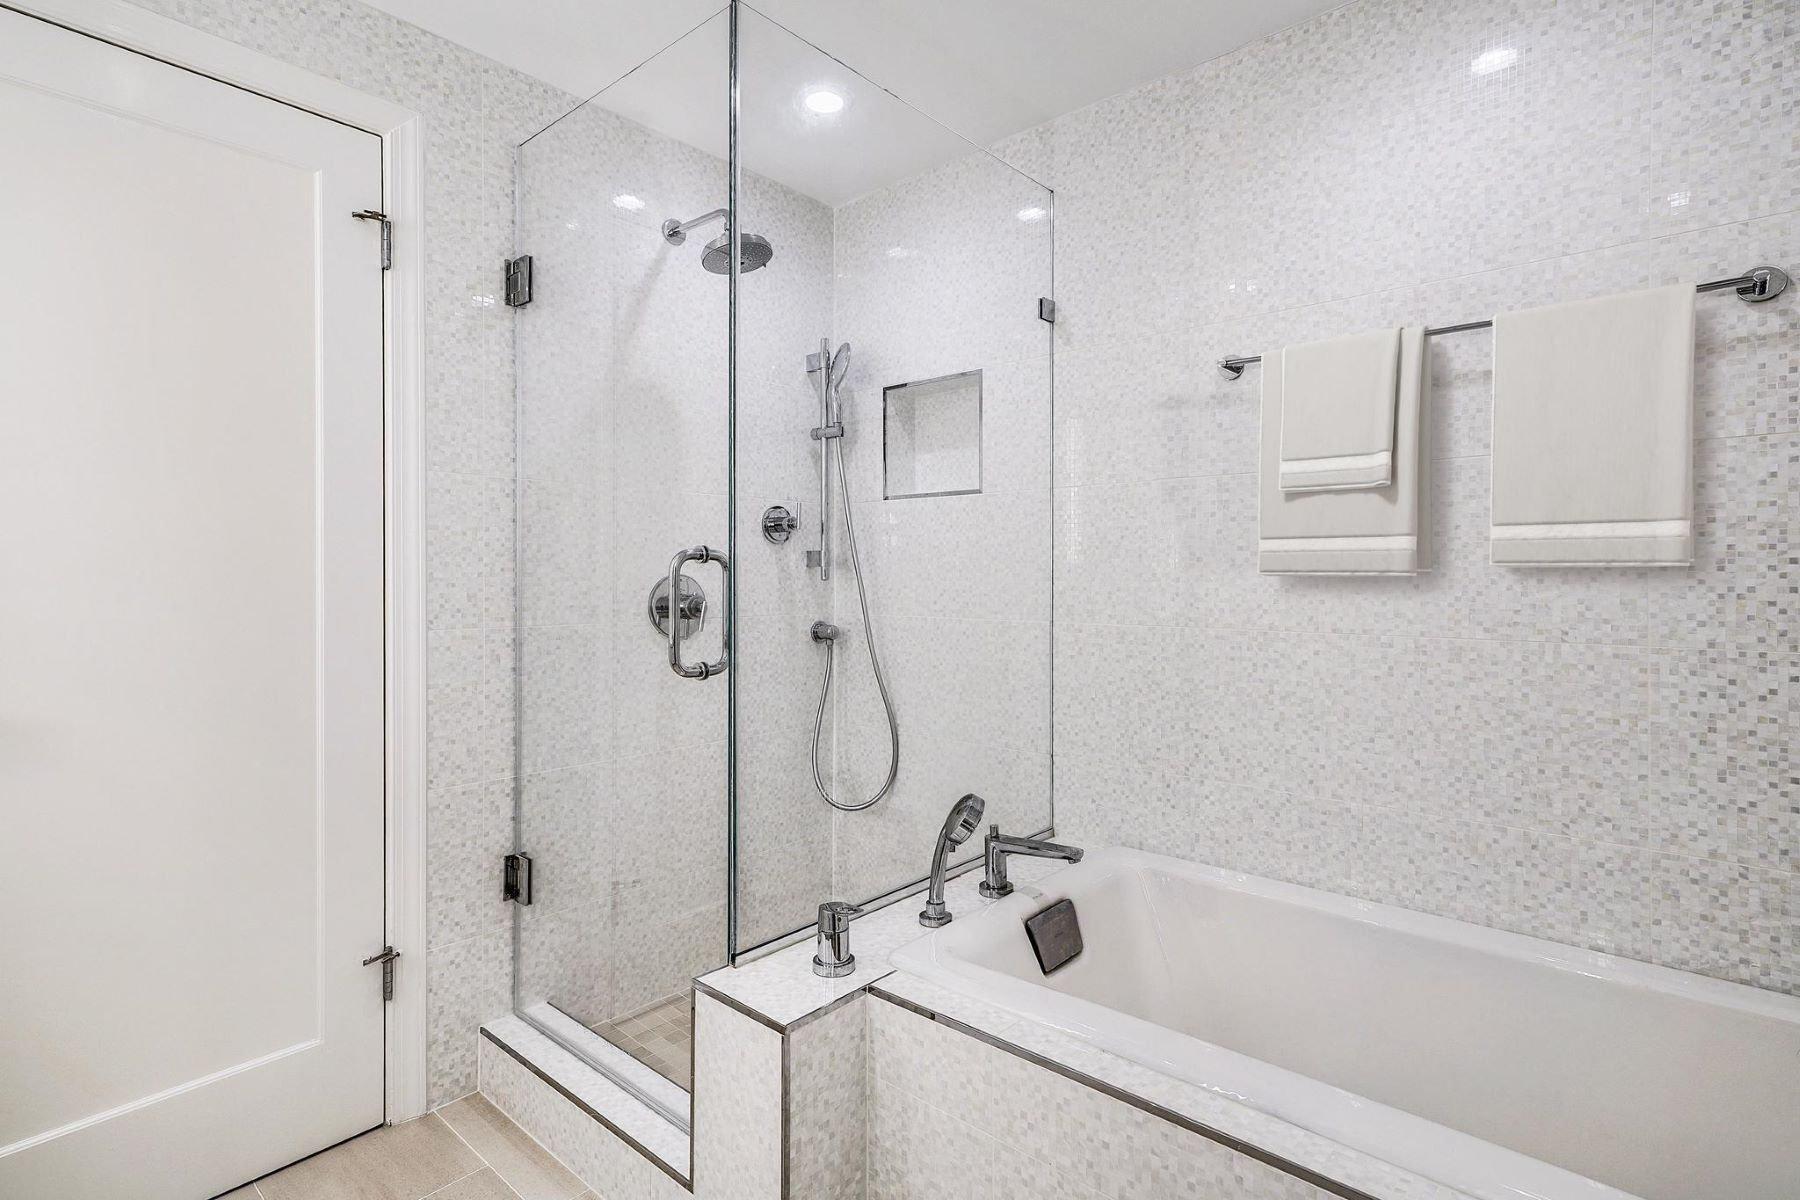 Additional photo for property listing at 2301 N Street NW #716 2301 N St NW #716 Washington, District Of Columbia 20037 United States